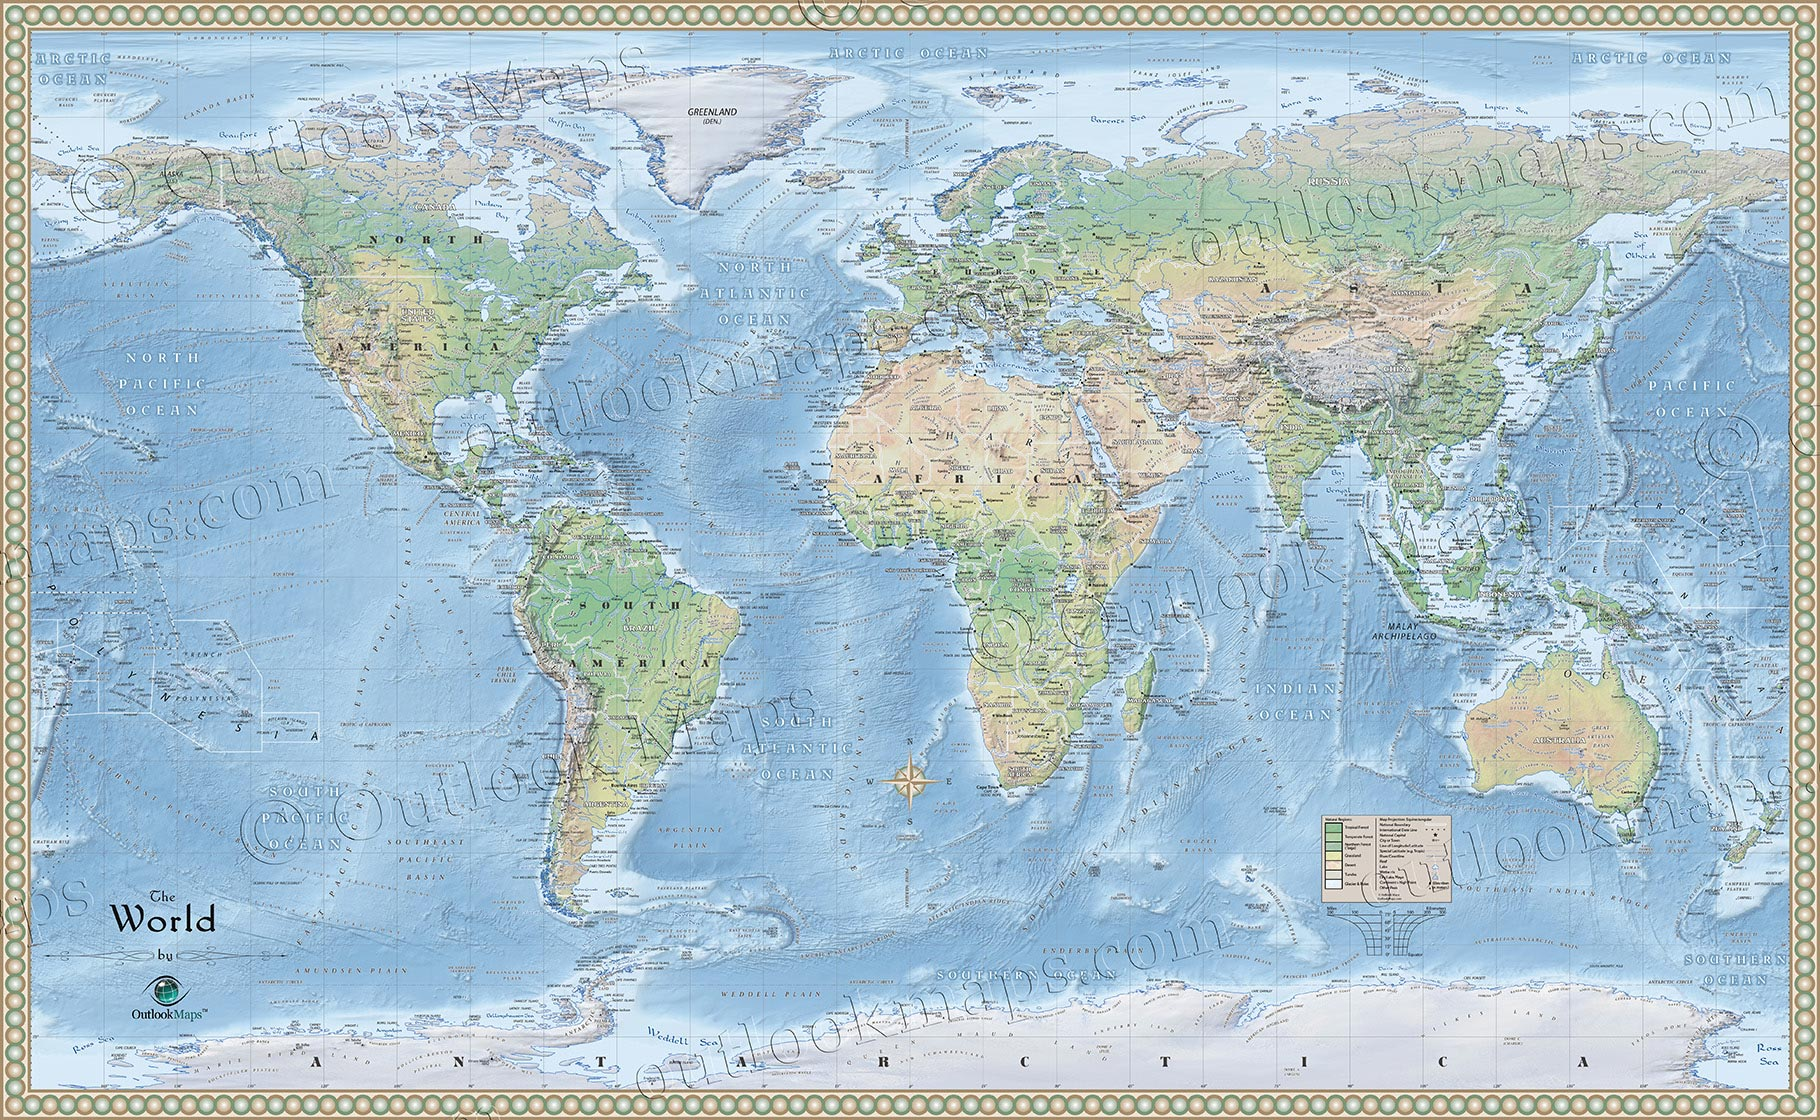 Physical Map of World | Environment Map of Natural Features